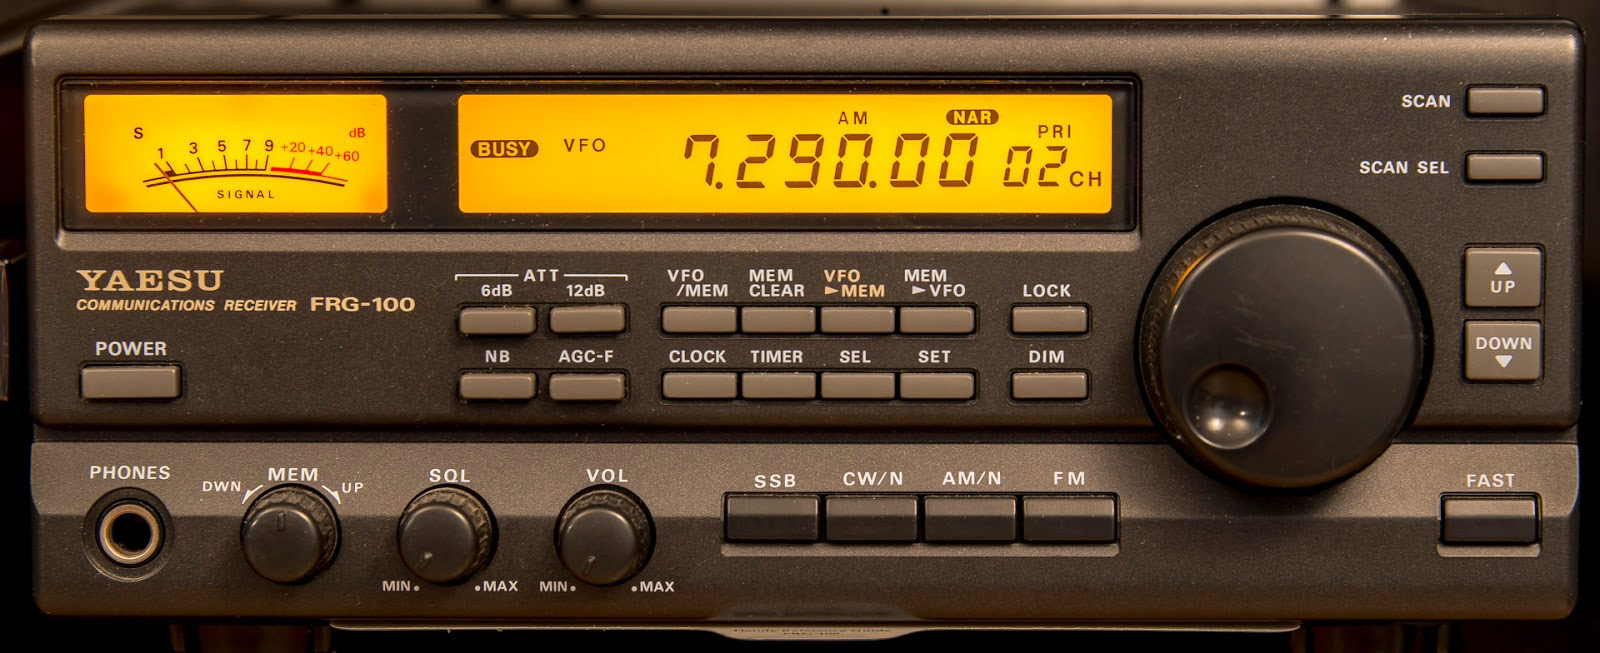 Retro receiver review 12 the yaesu frg 100 mount evelyn dx report retro receiver review 12 gumiabroncs Image collections